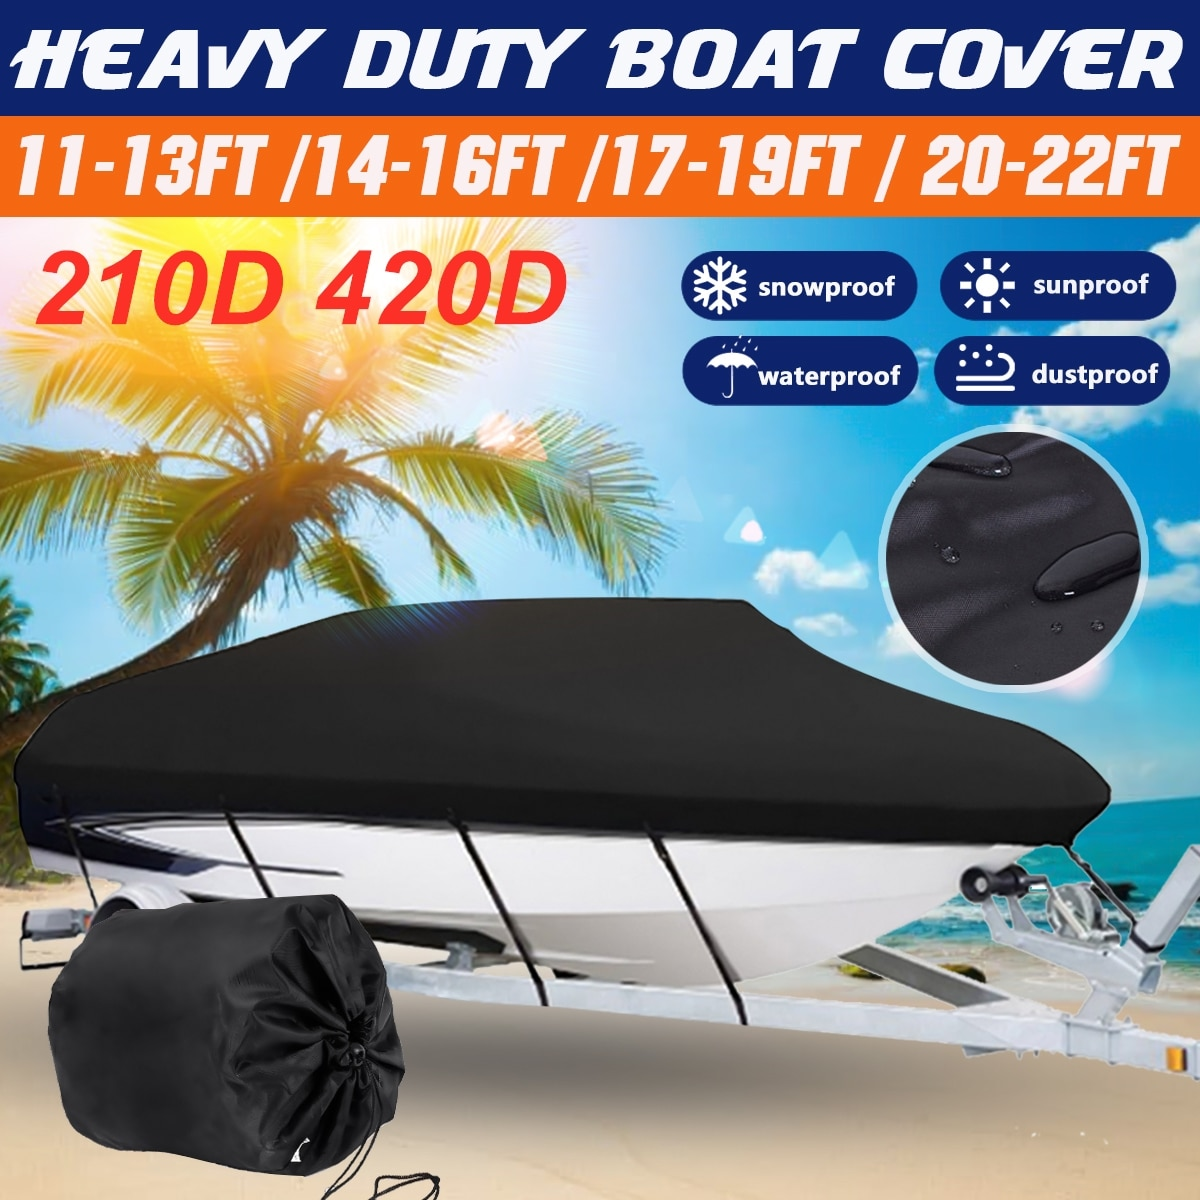 11-13/14-16/17-19/20-22ft barco Boat Cover Anti-UV Waterproof Heavy Duty 210D 420D Marine Trailerable Canvas Boat Accessories